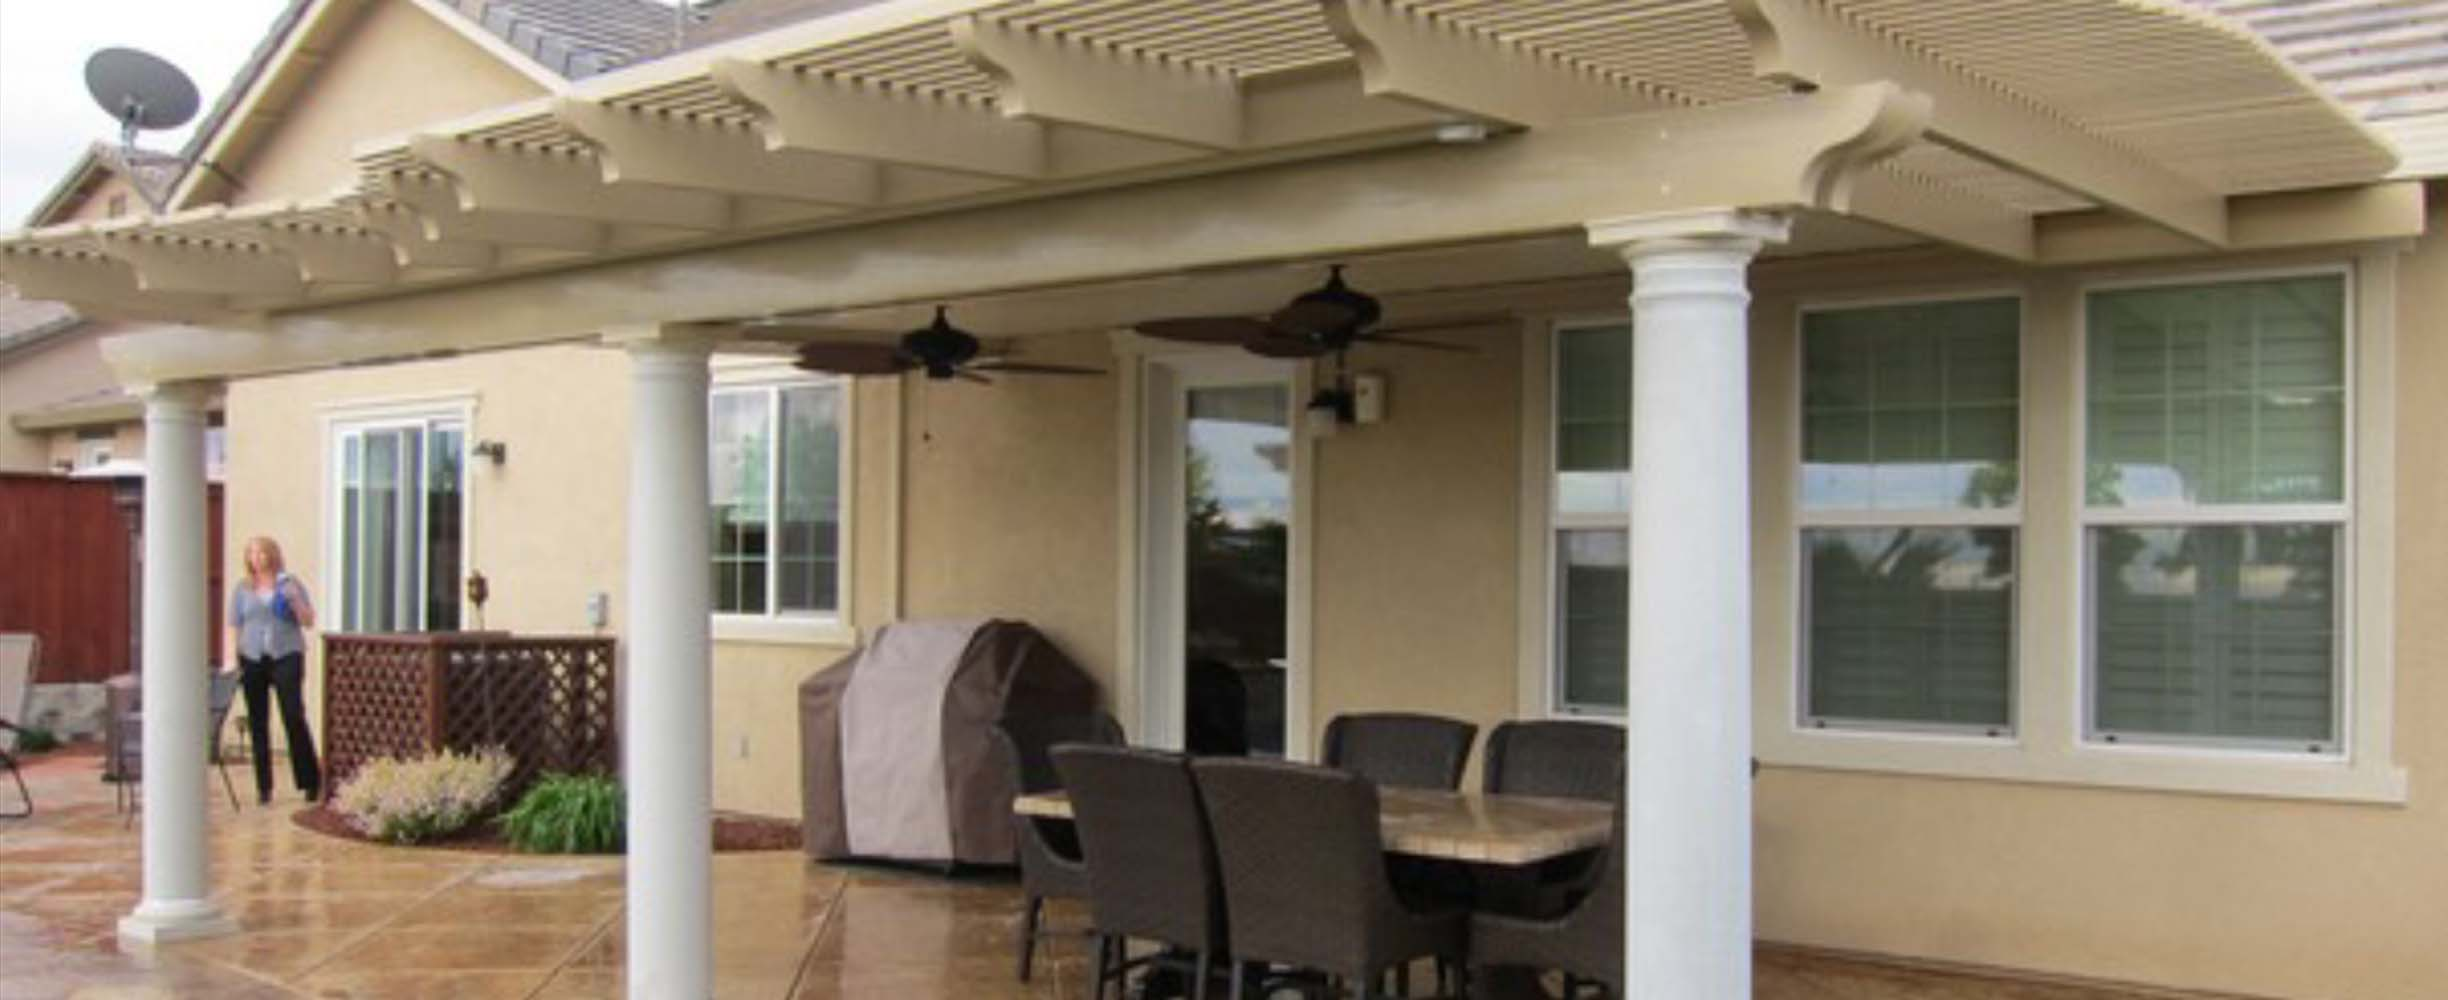 Beautiful Pergol, or pergola, adding functionality to a patio or garden in a beautiful and classy way.